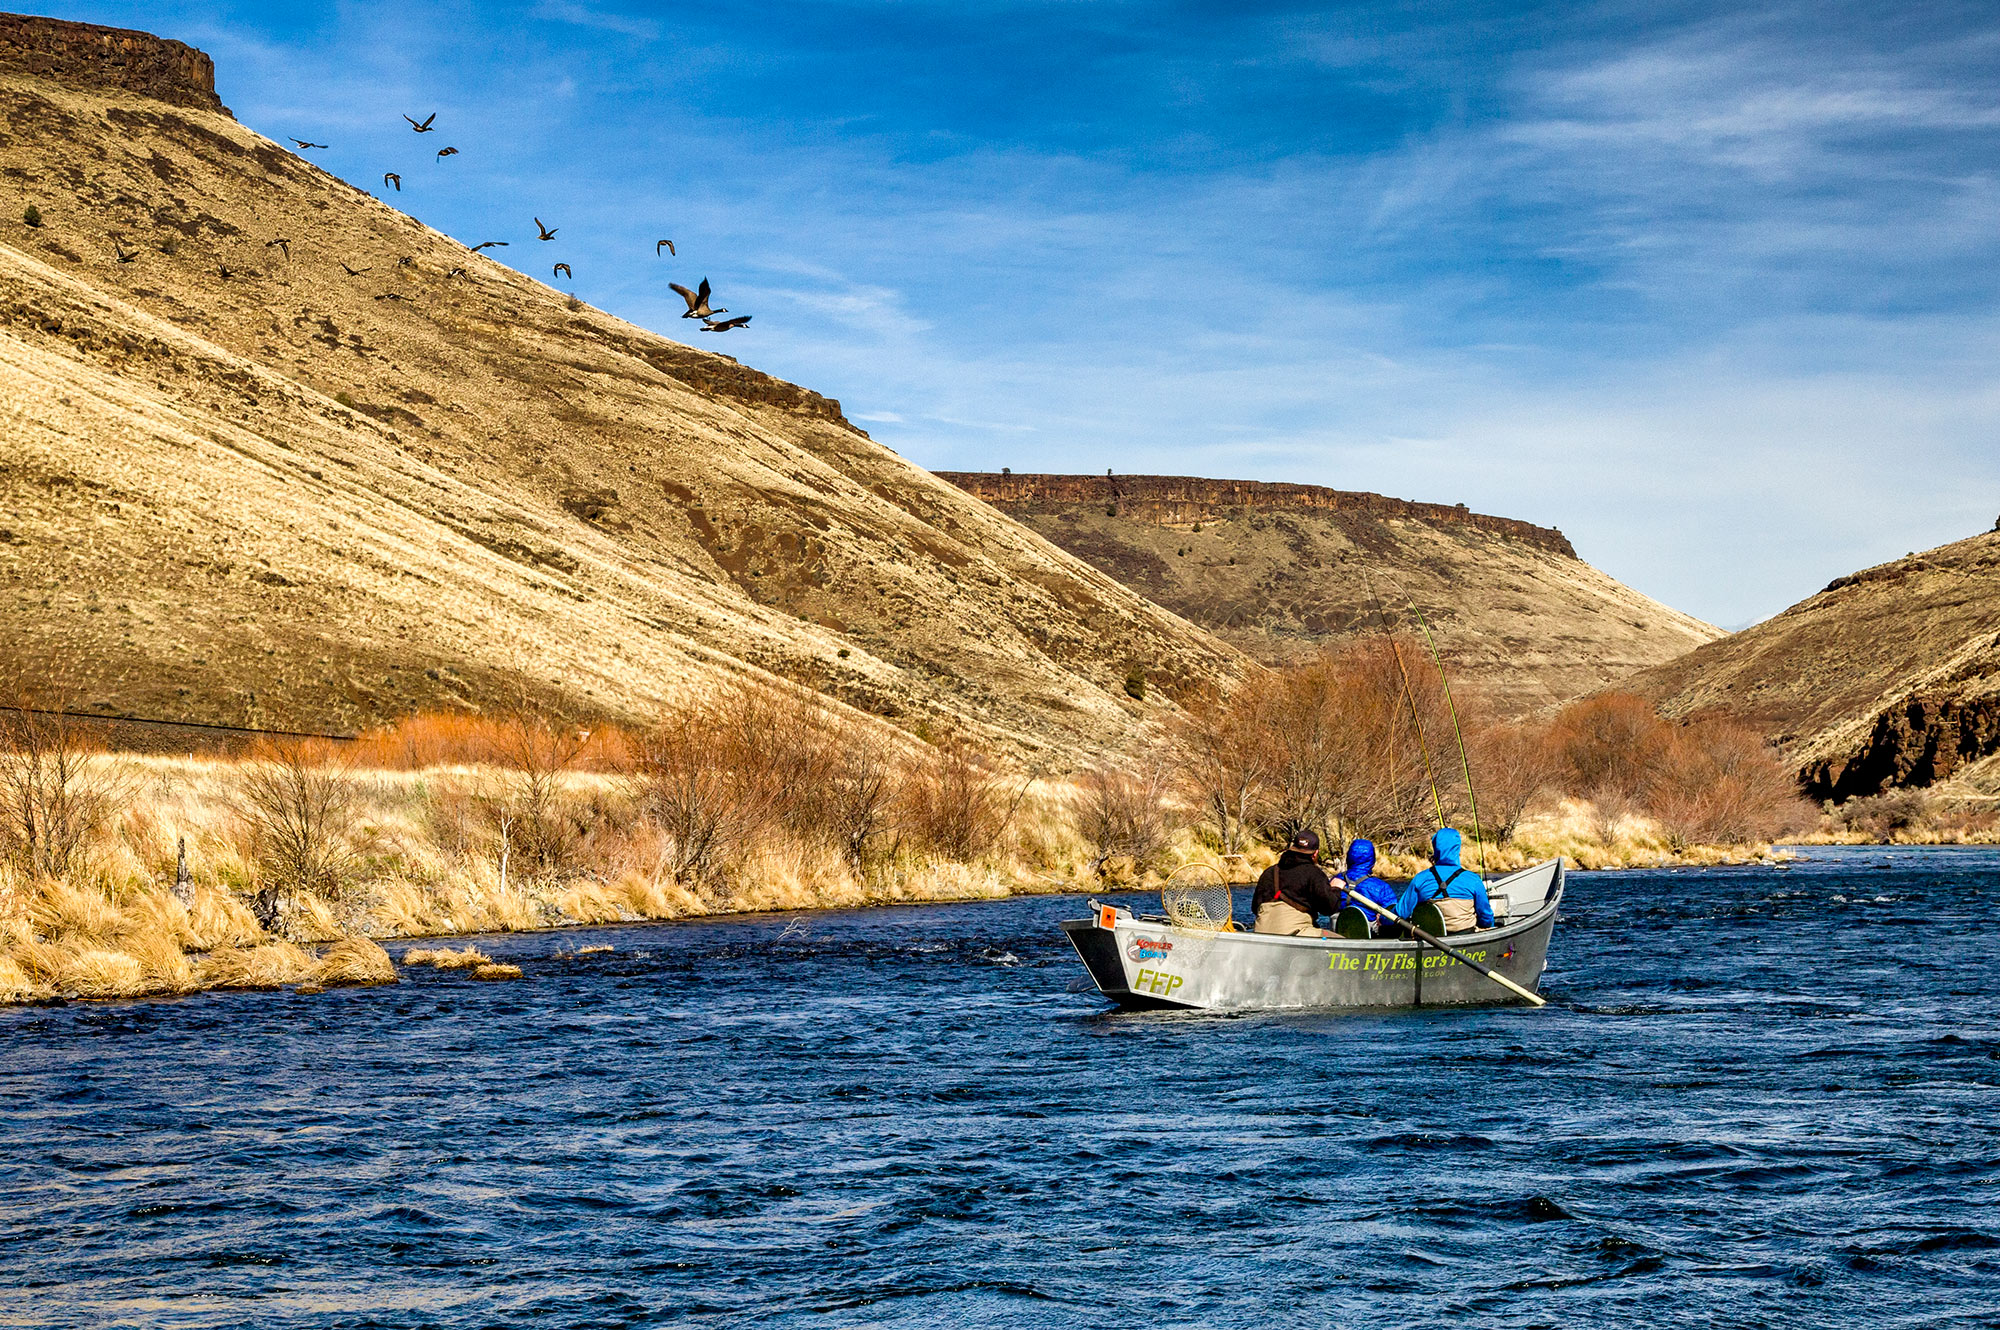 A flock of geese joining us on the Deschutes river